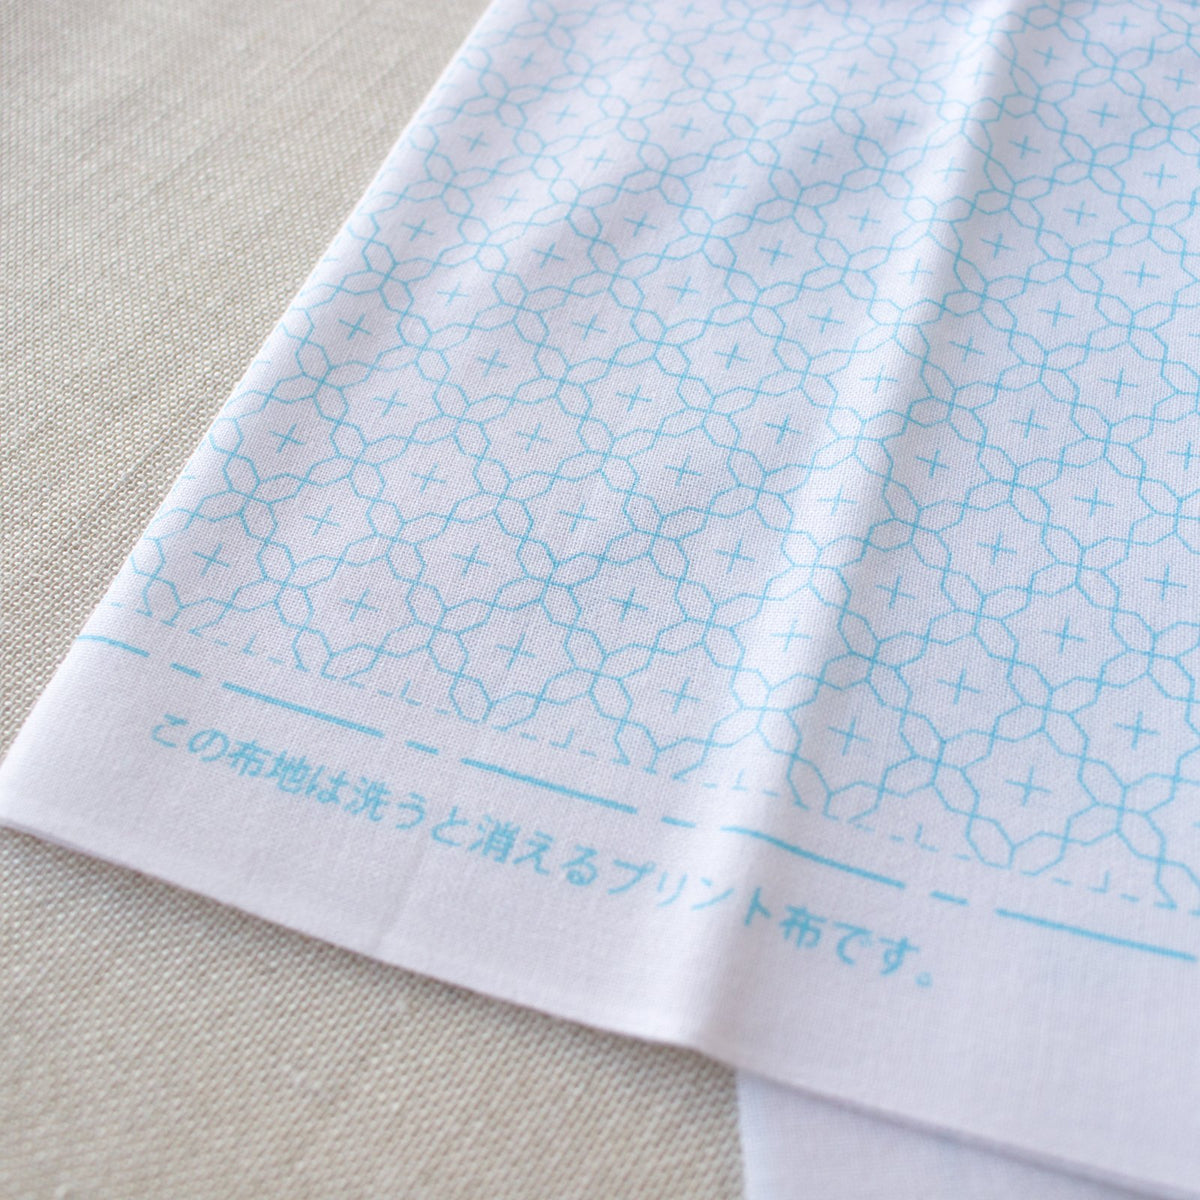 Japanese Sashiko White Sampler Cloth - Jyuji-hana-zashi